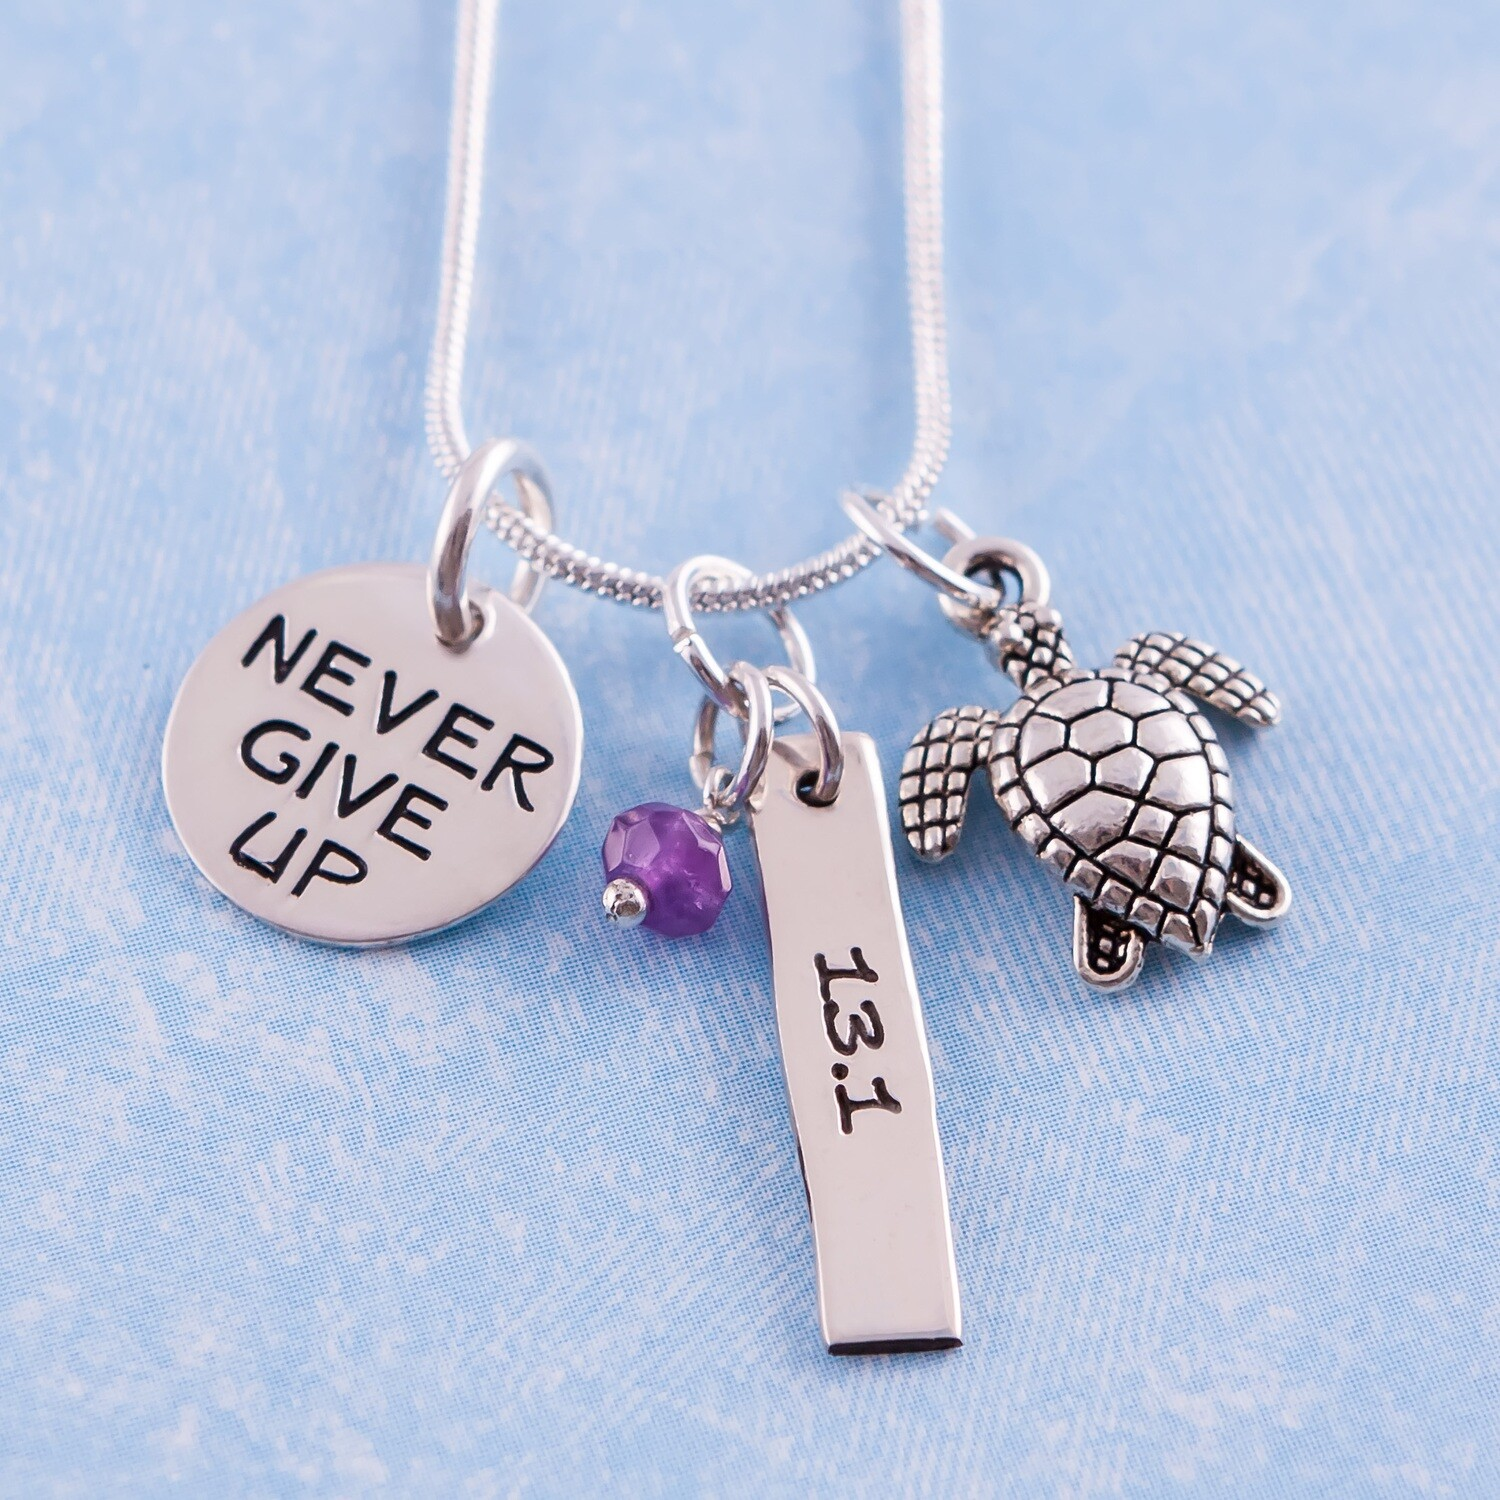 13.1 Never Give Up Necklace